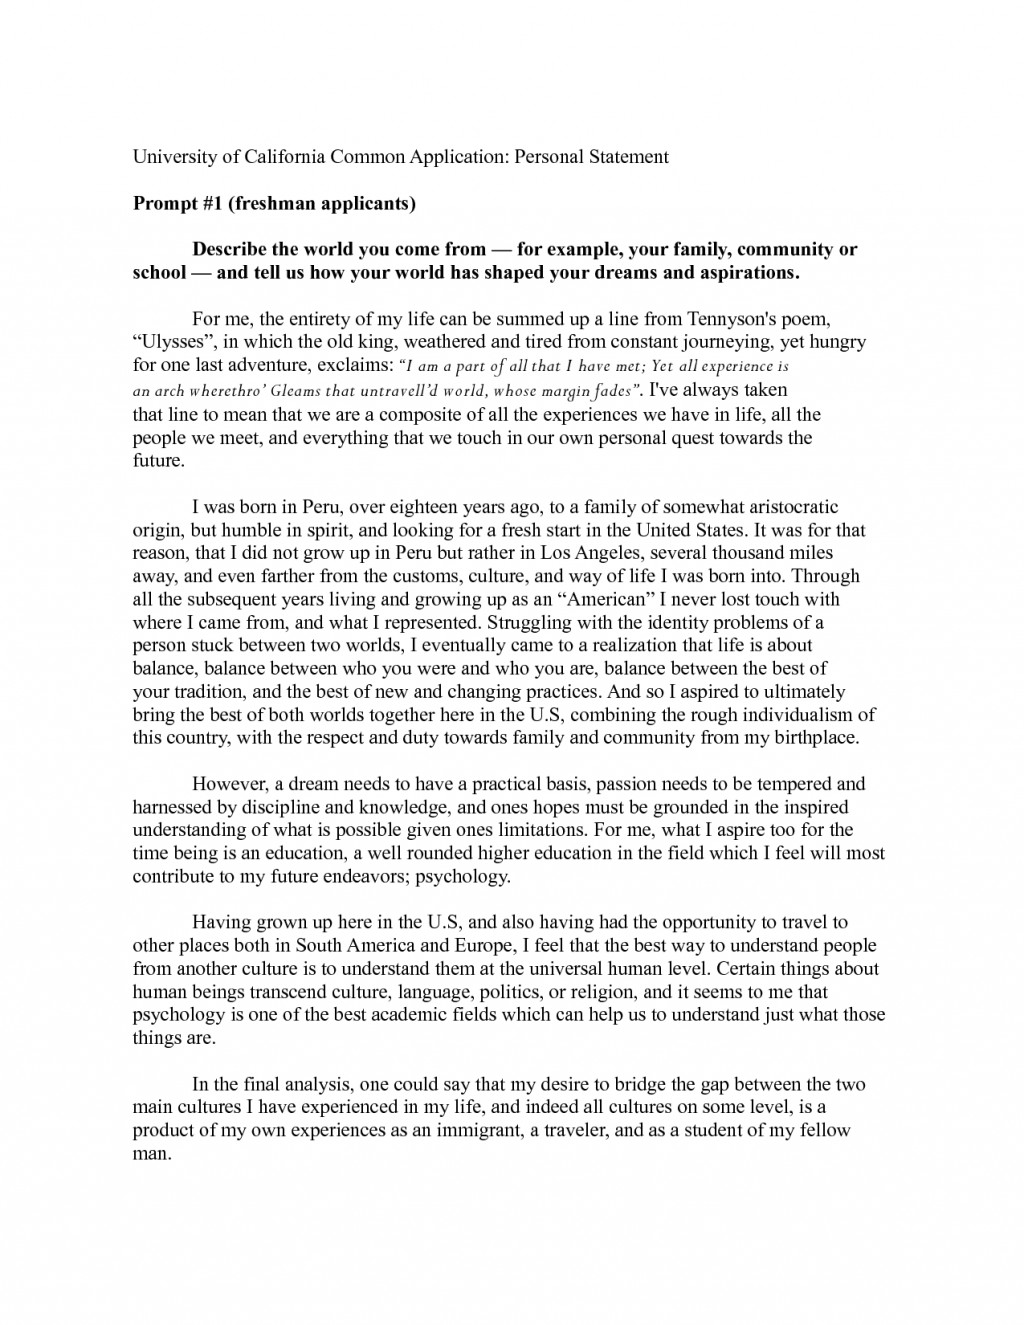 011 Collegecation Essays Words Berkeley Personal Statement Template Pcffemqy Student Life About Health This Will Attempt To Awesome 1024x1325 Immigration Unusual Sybil Baker Introduction Large